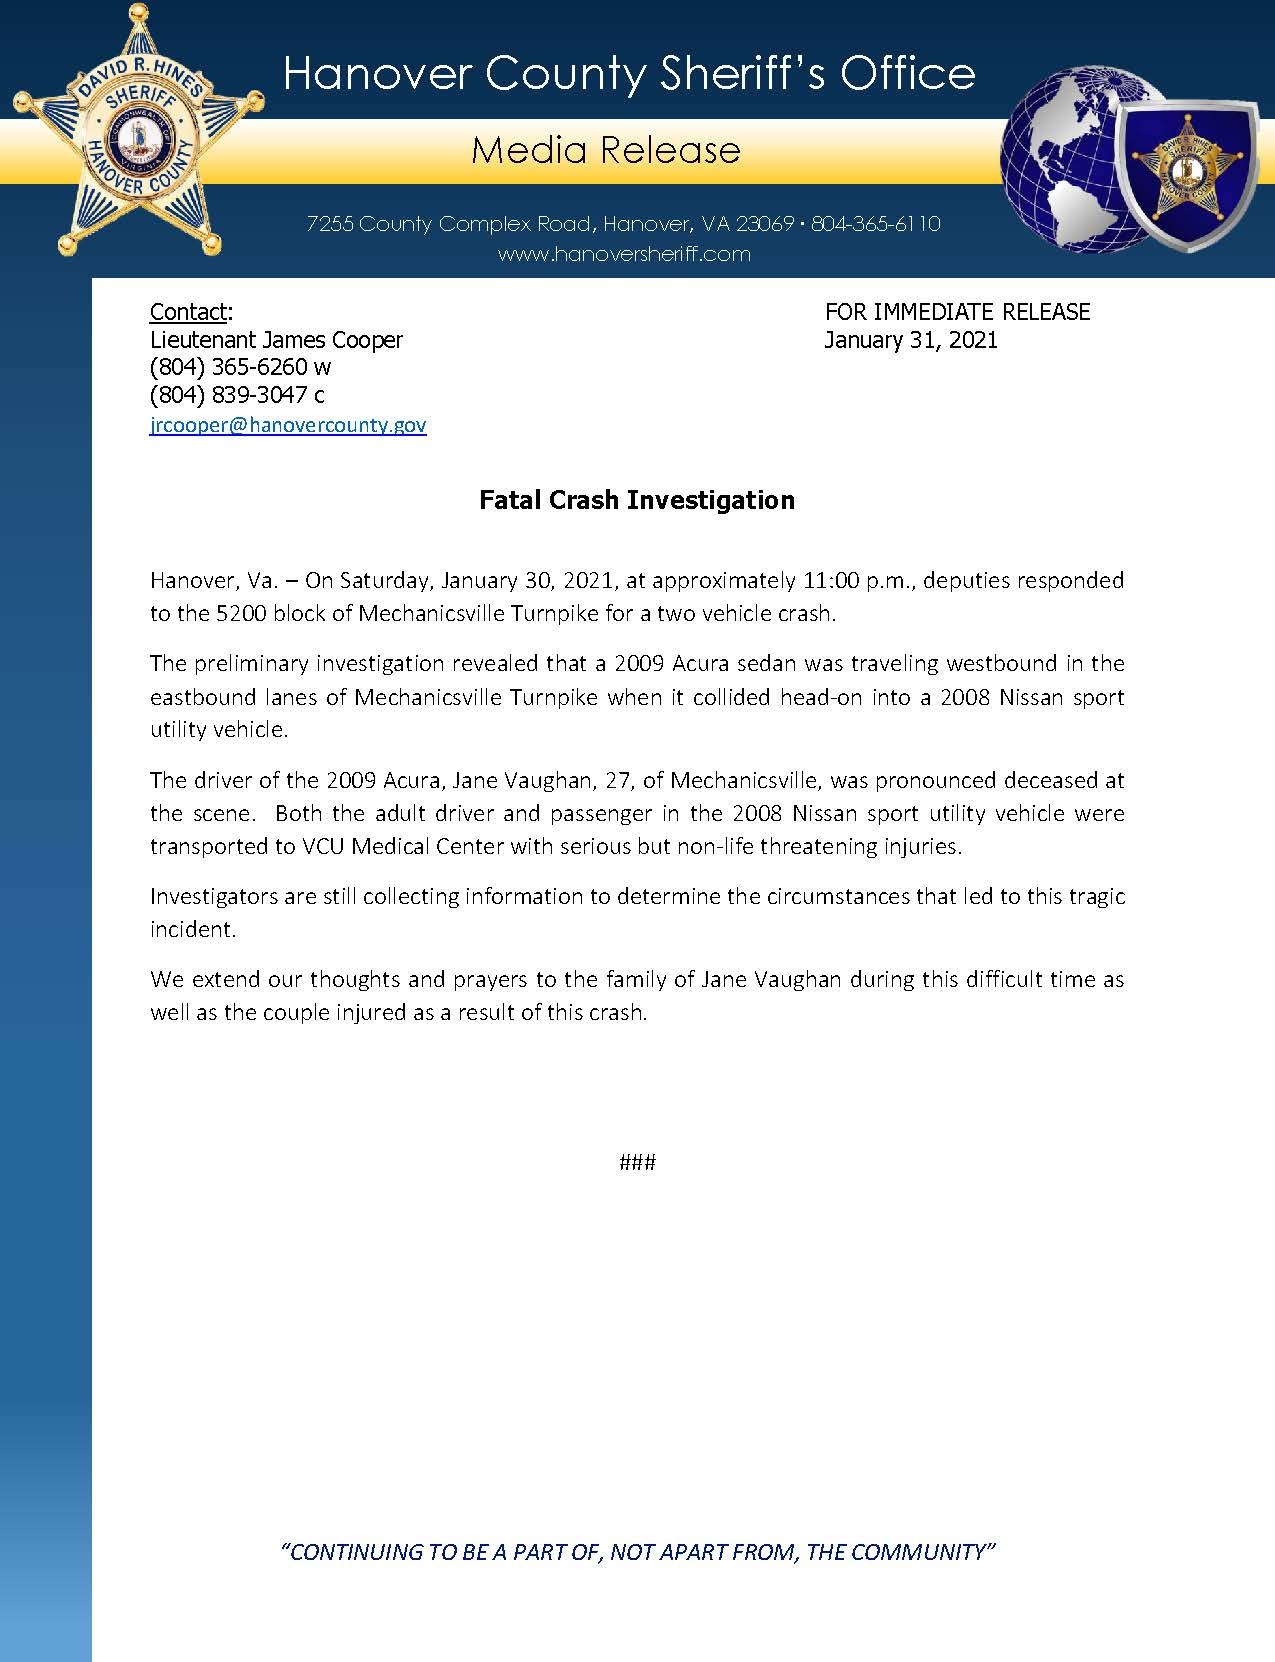 HCSO Media Release - Fatal Crash Investigation 1.31.21